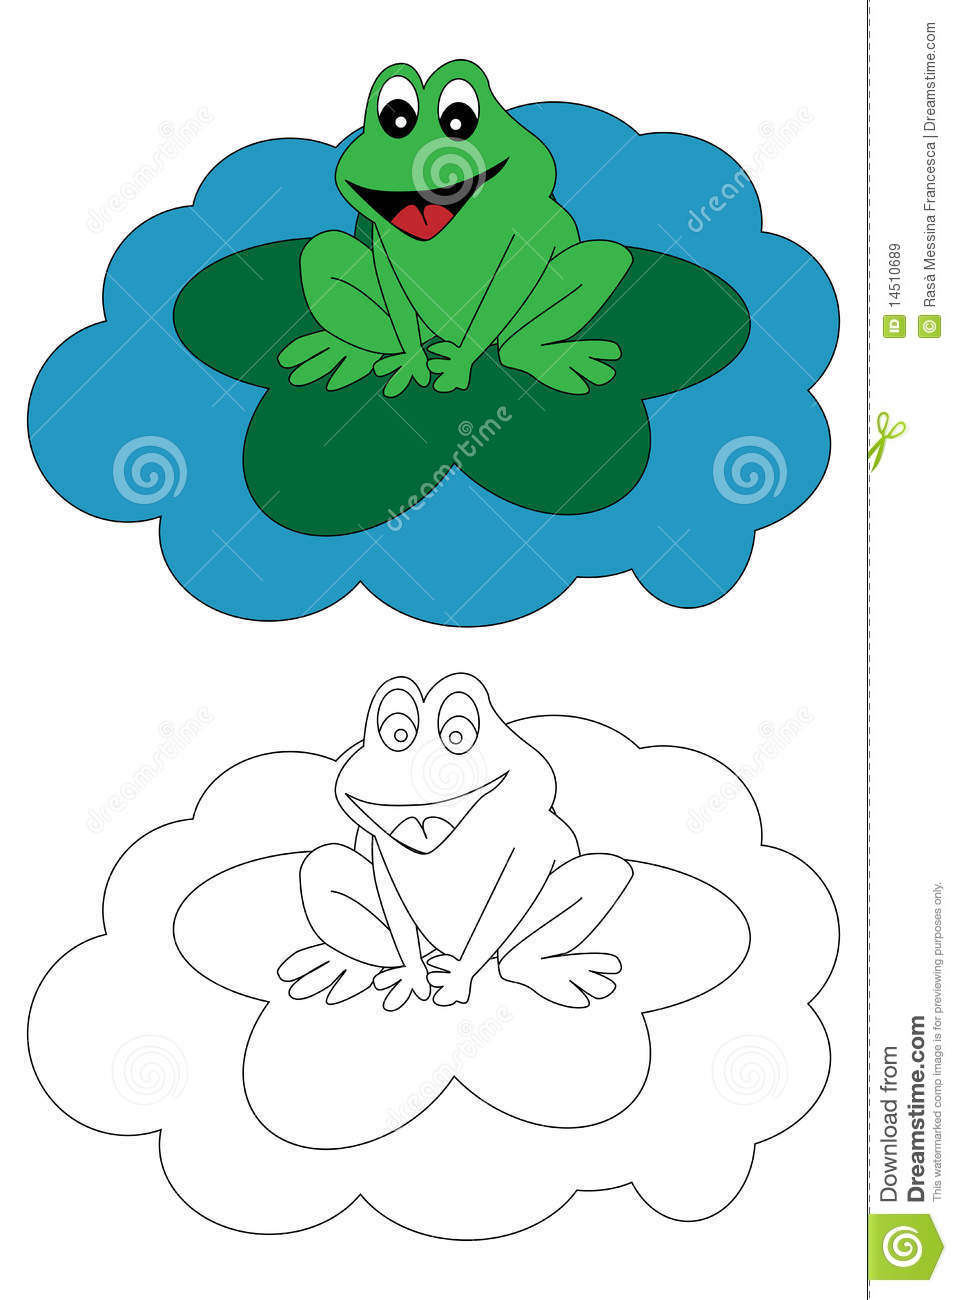 Coloring Page Book For Kids - Frog Royalty Free Stock ...